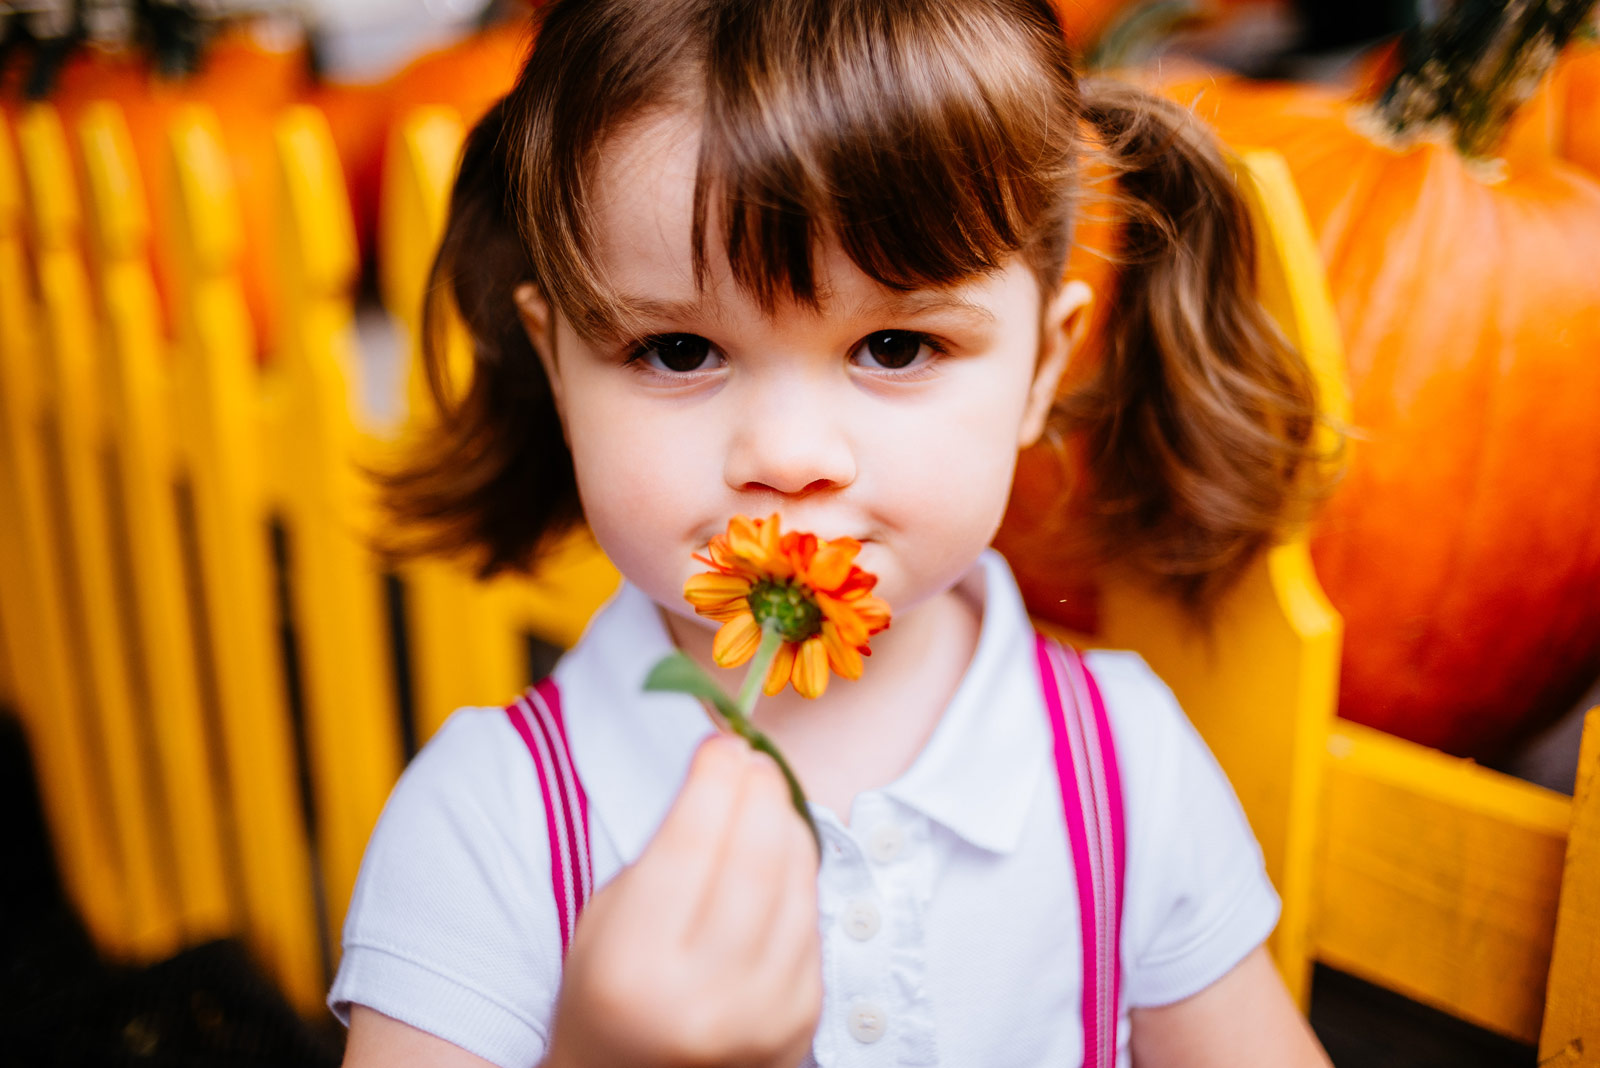 little girl smelling flower capitol market charleston wv